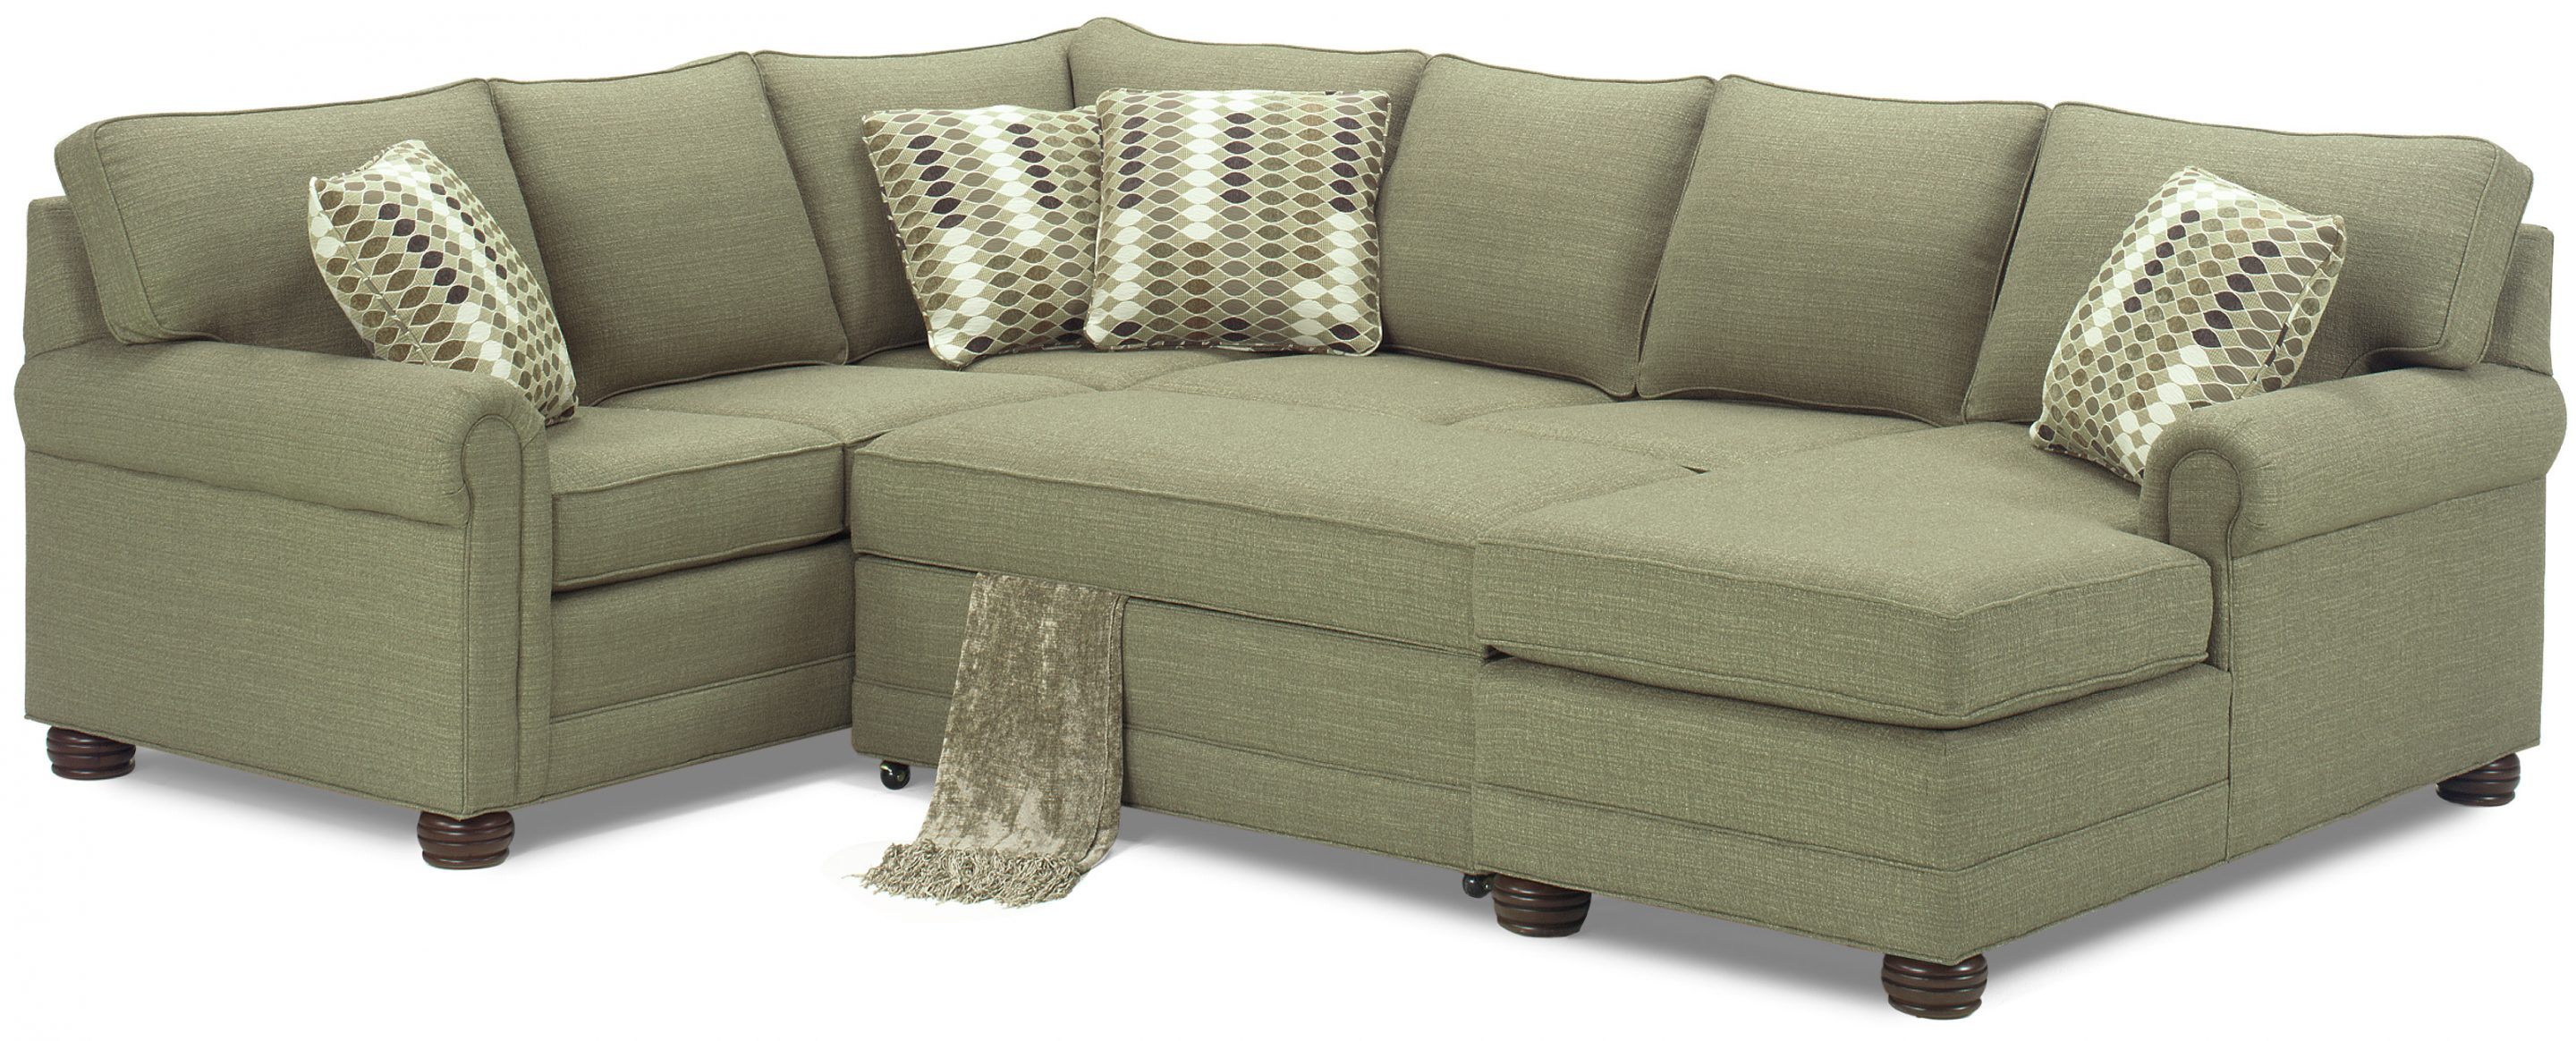 Country Style Loveseats Personalised Home Design